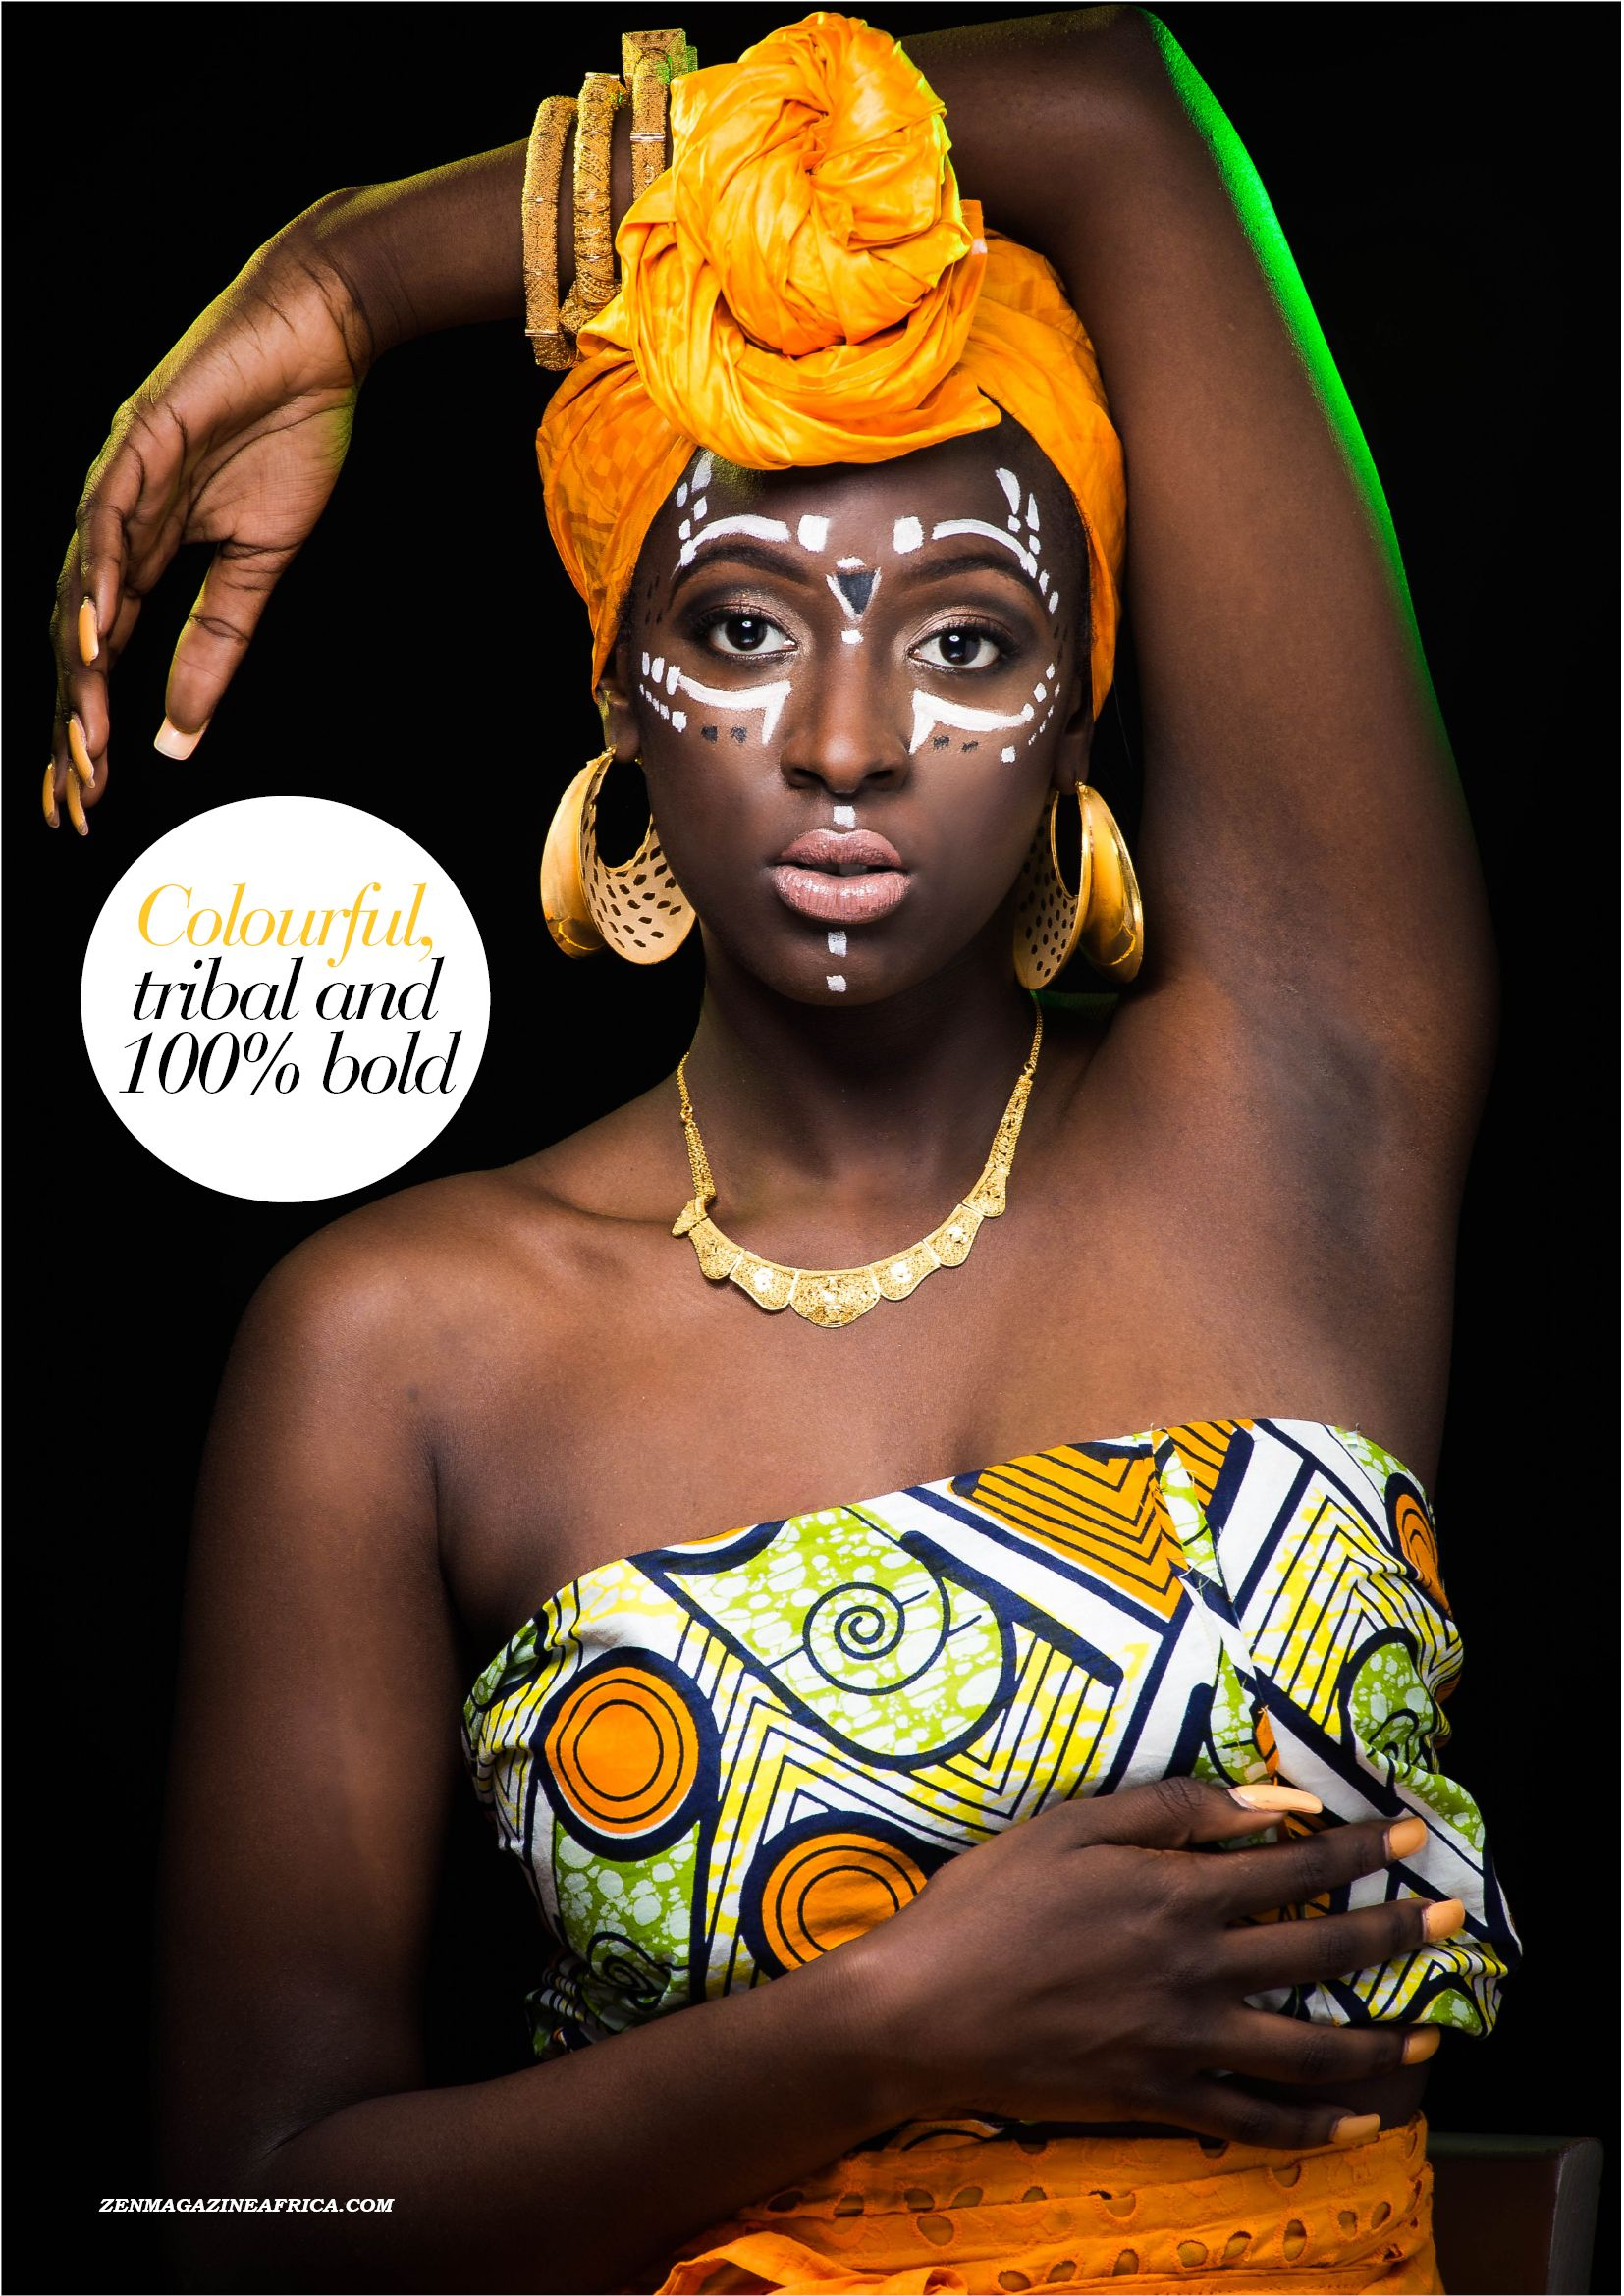 """It's tribal makeup with bold headwraps, prints, accessories and all inspired by the music single """"Shoki"""" by Lil Kesh. Photographed by Allen Stewart."""